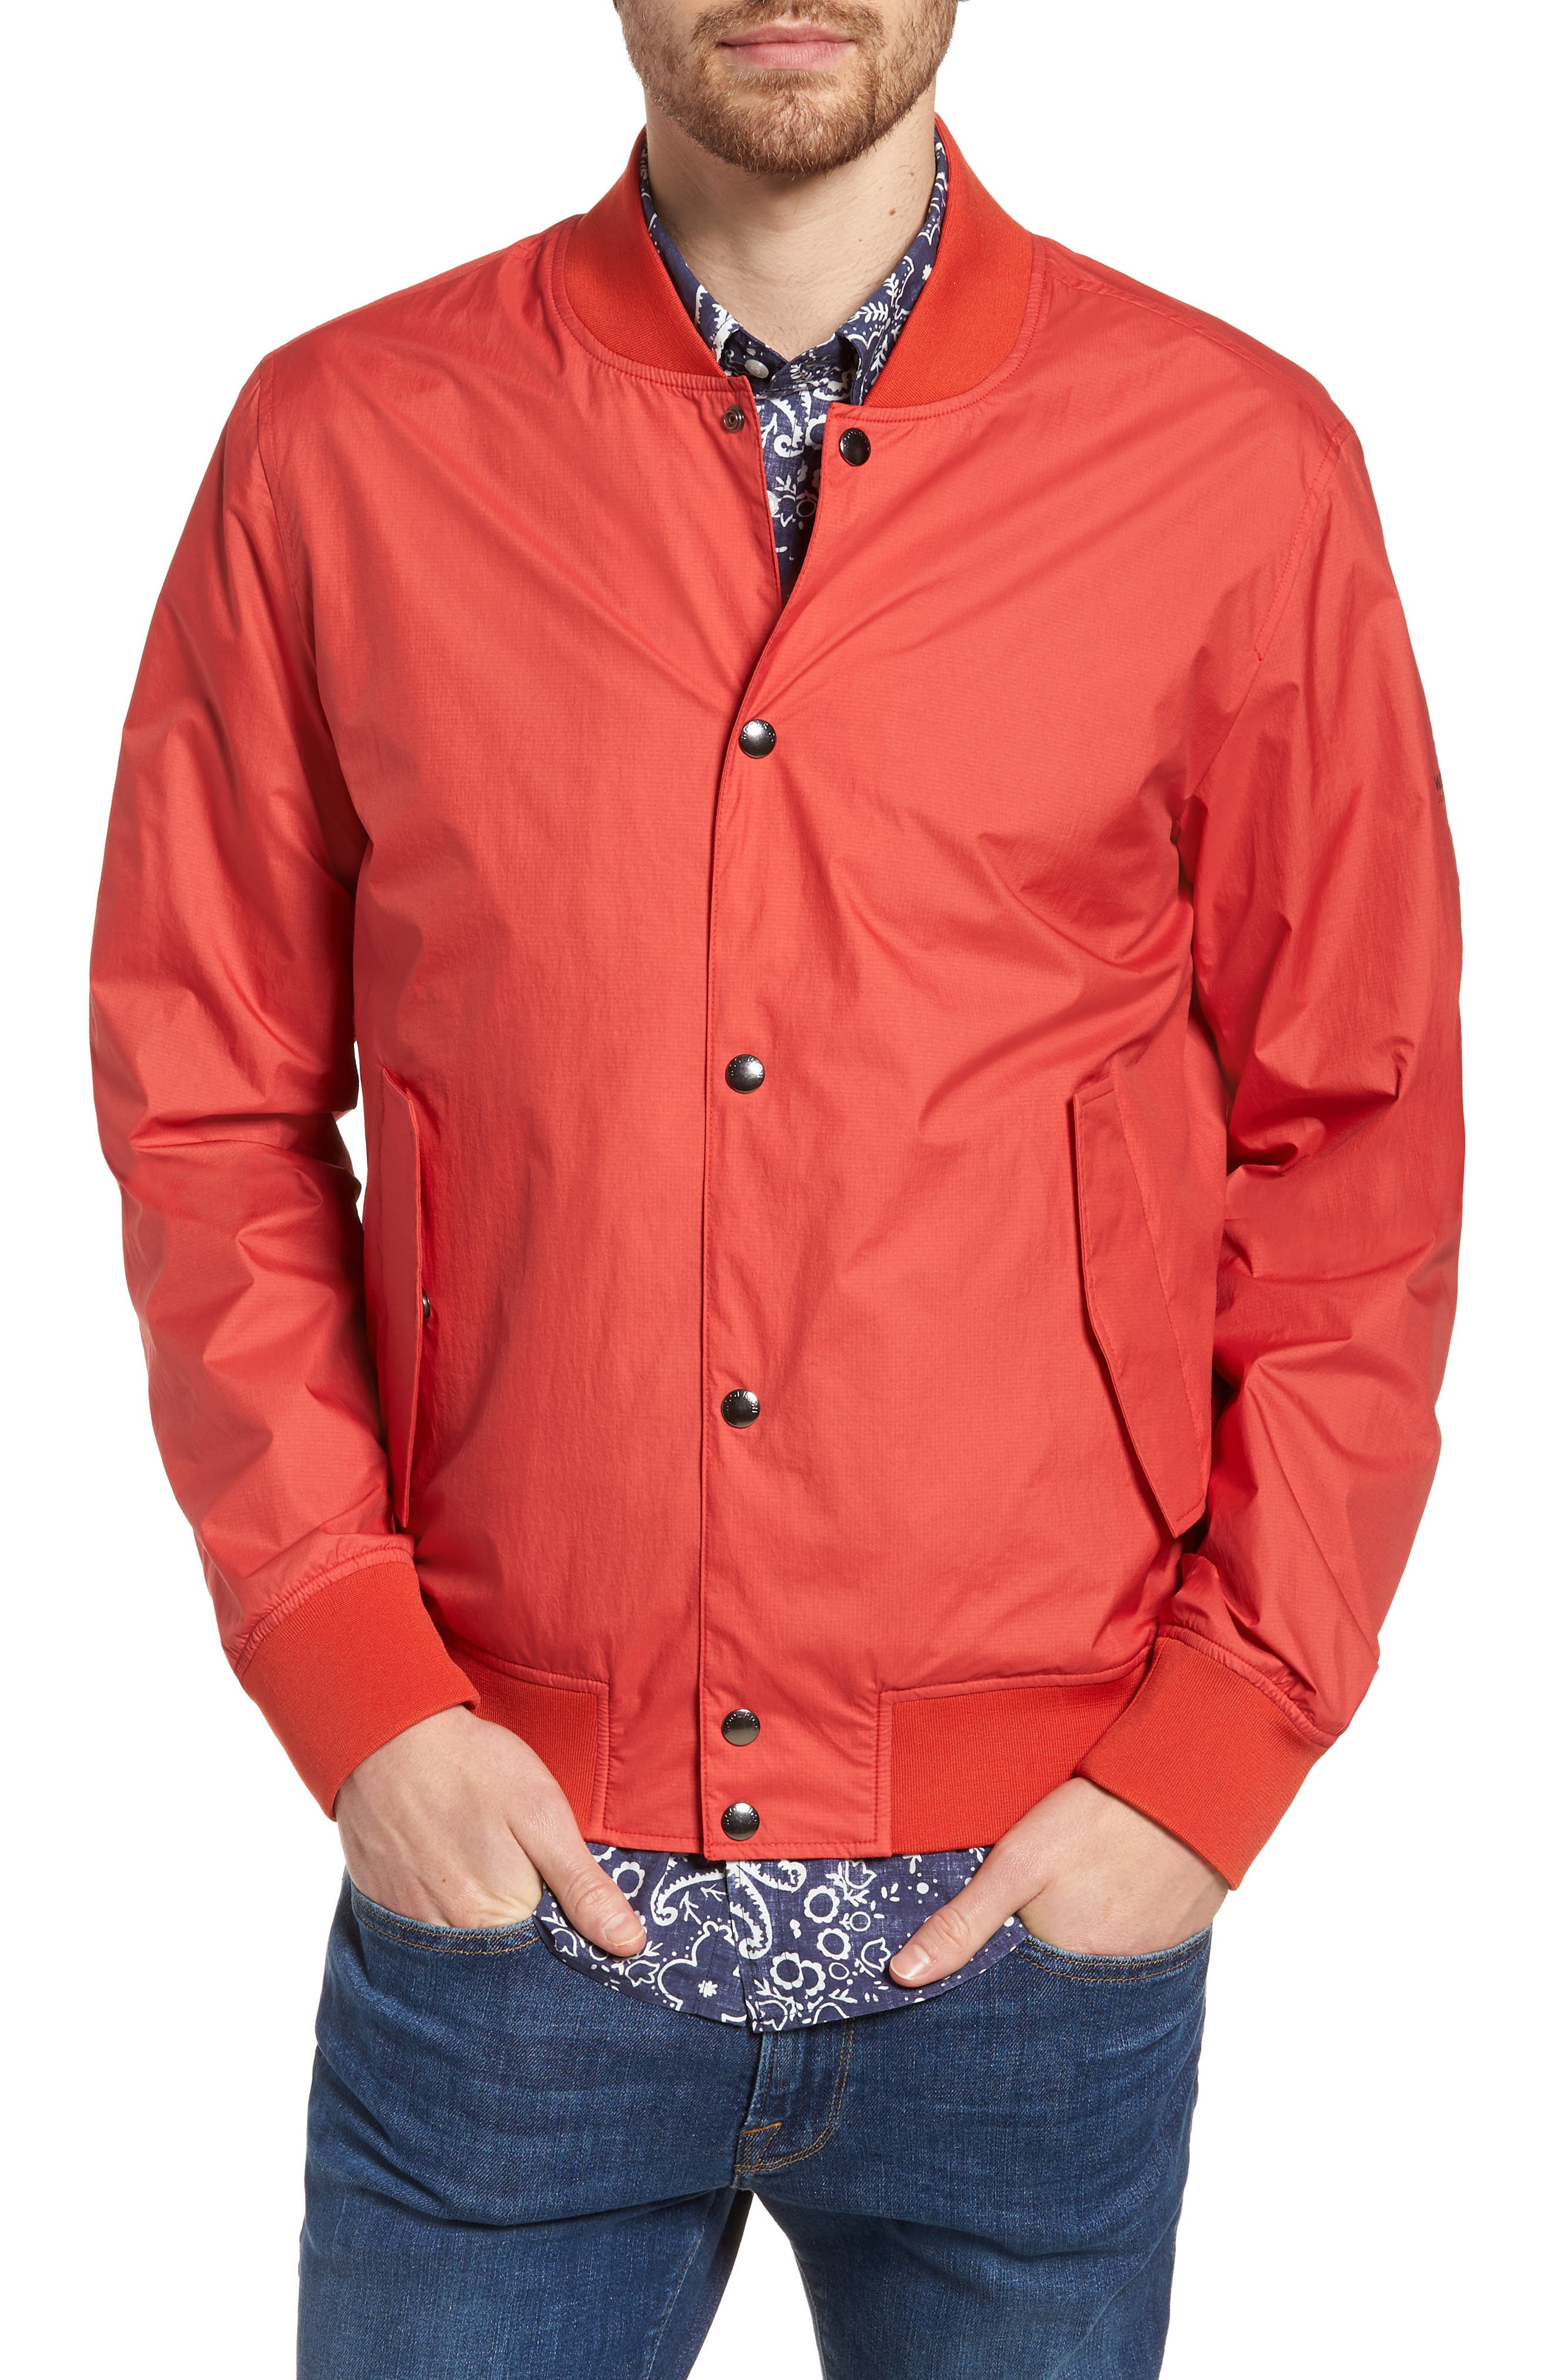 Wallaby Bomber Jacket,                             Alternate thumbnail 4, color,                             Aurora Red